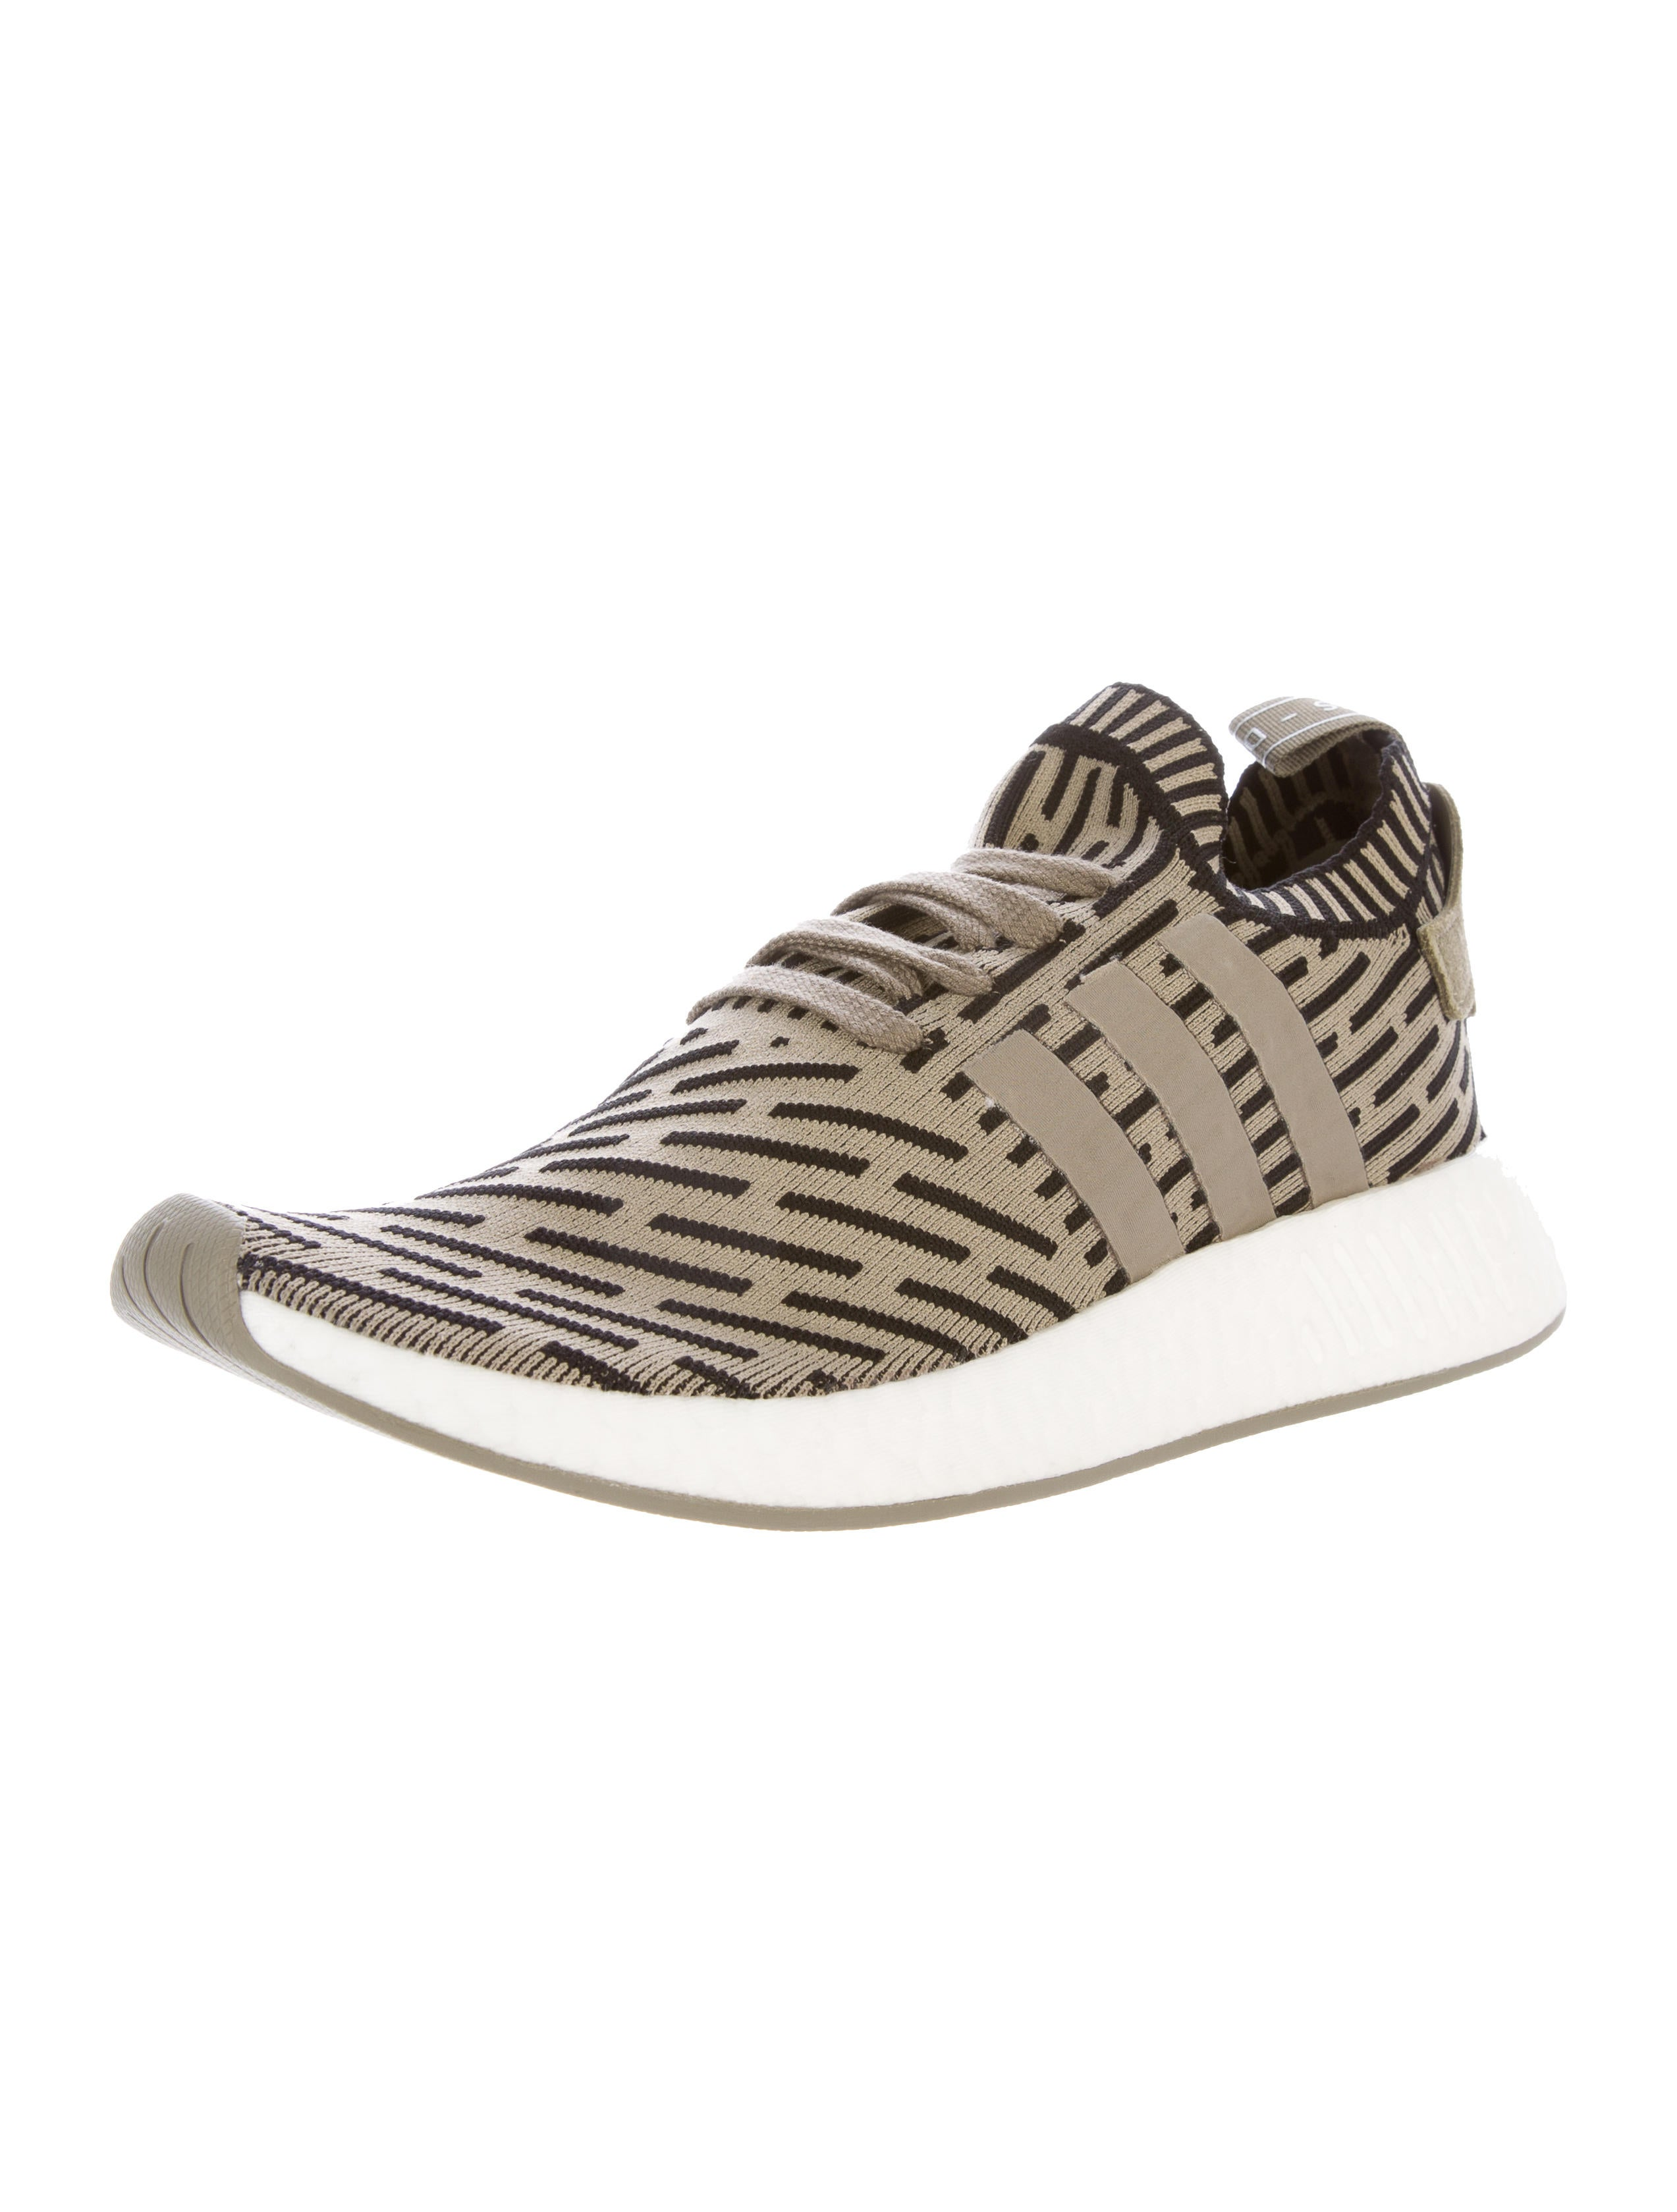 adidas nmd r2 pk sneakers w tags shoes w2ads20271 the realreal. Black Bedroom Furniture Sets. Home Design Ideas